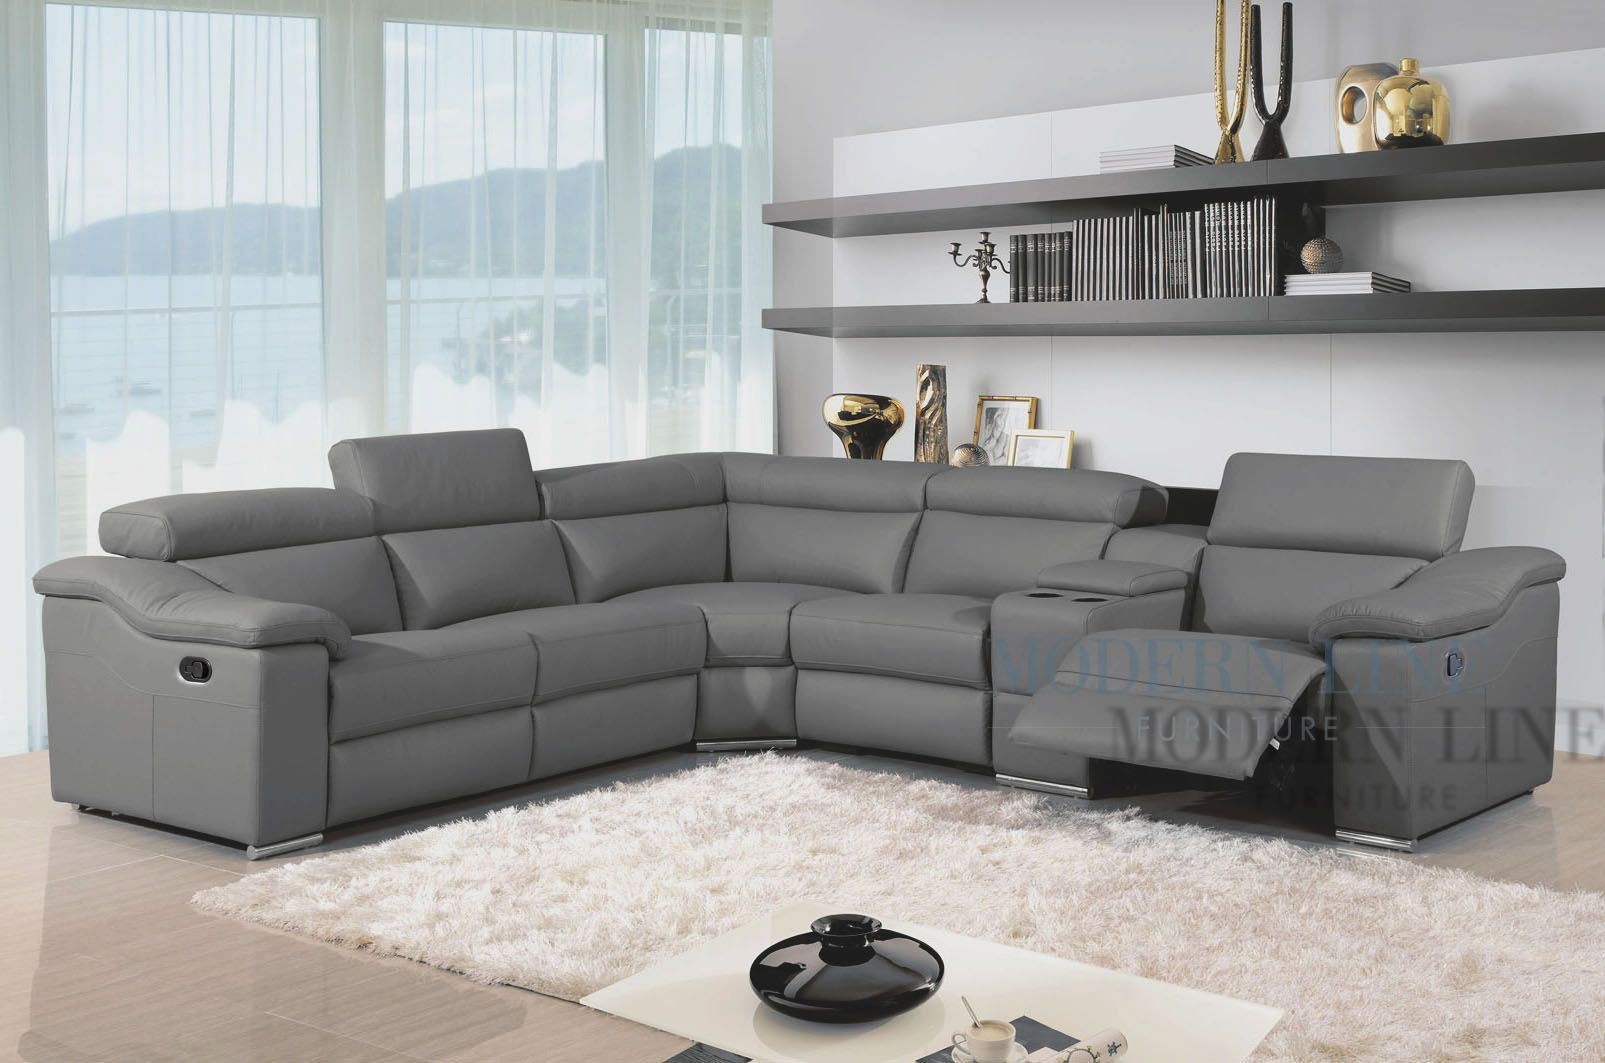 Modern Leather Reclining Sectional Grey leather modern sectional & Modern Leather Reclining Sectional Grey leather modern sectional ... islam-shia.org